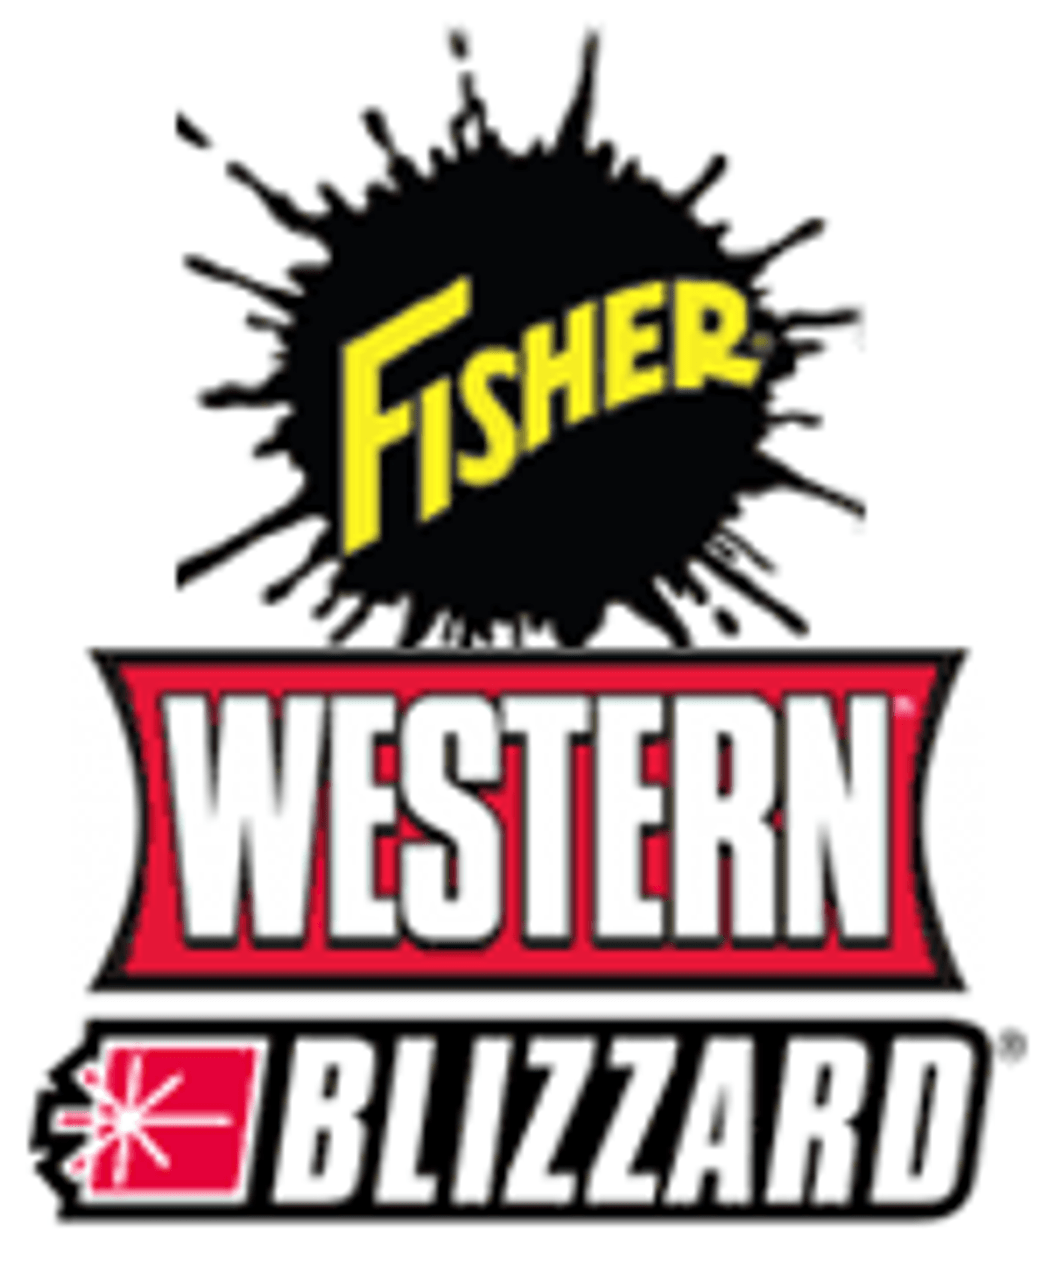 """22511 - FISHER - WESTERN - BLIZZARD BATTERY CABLE 22"""" RED"""